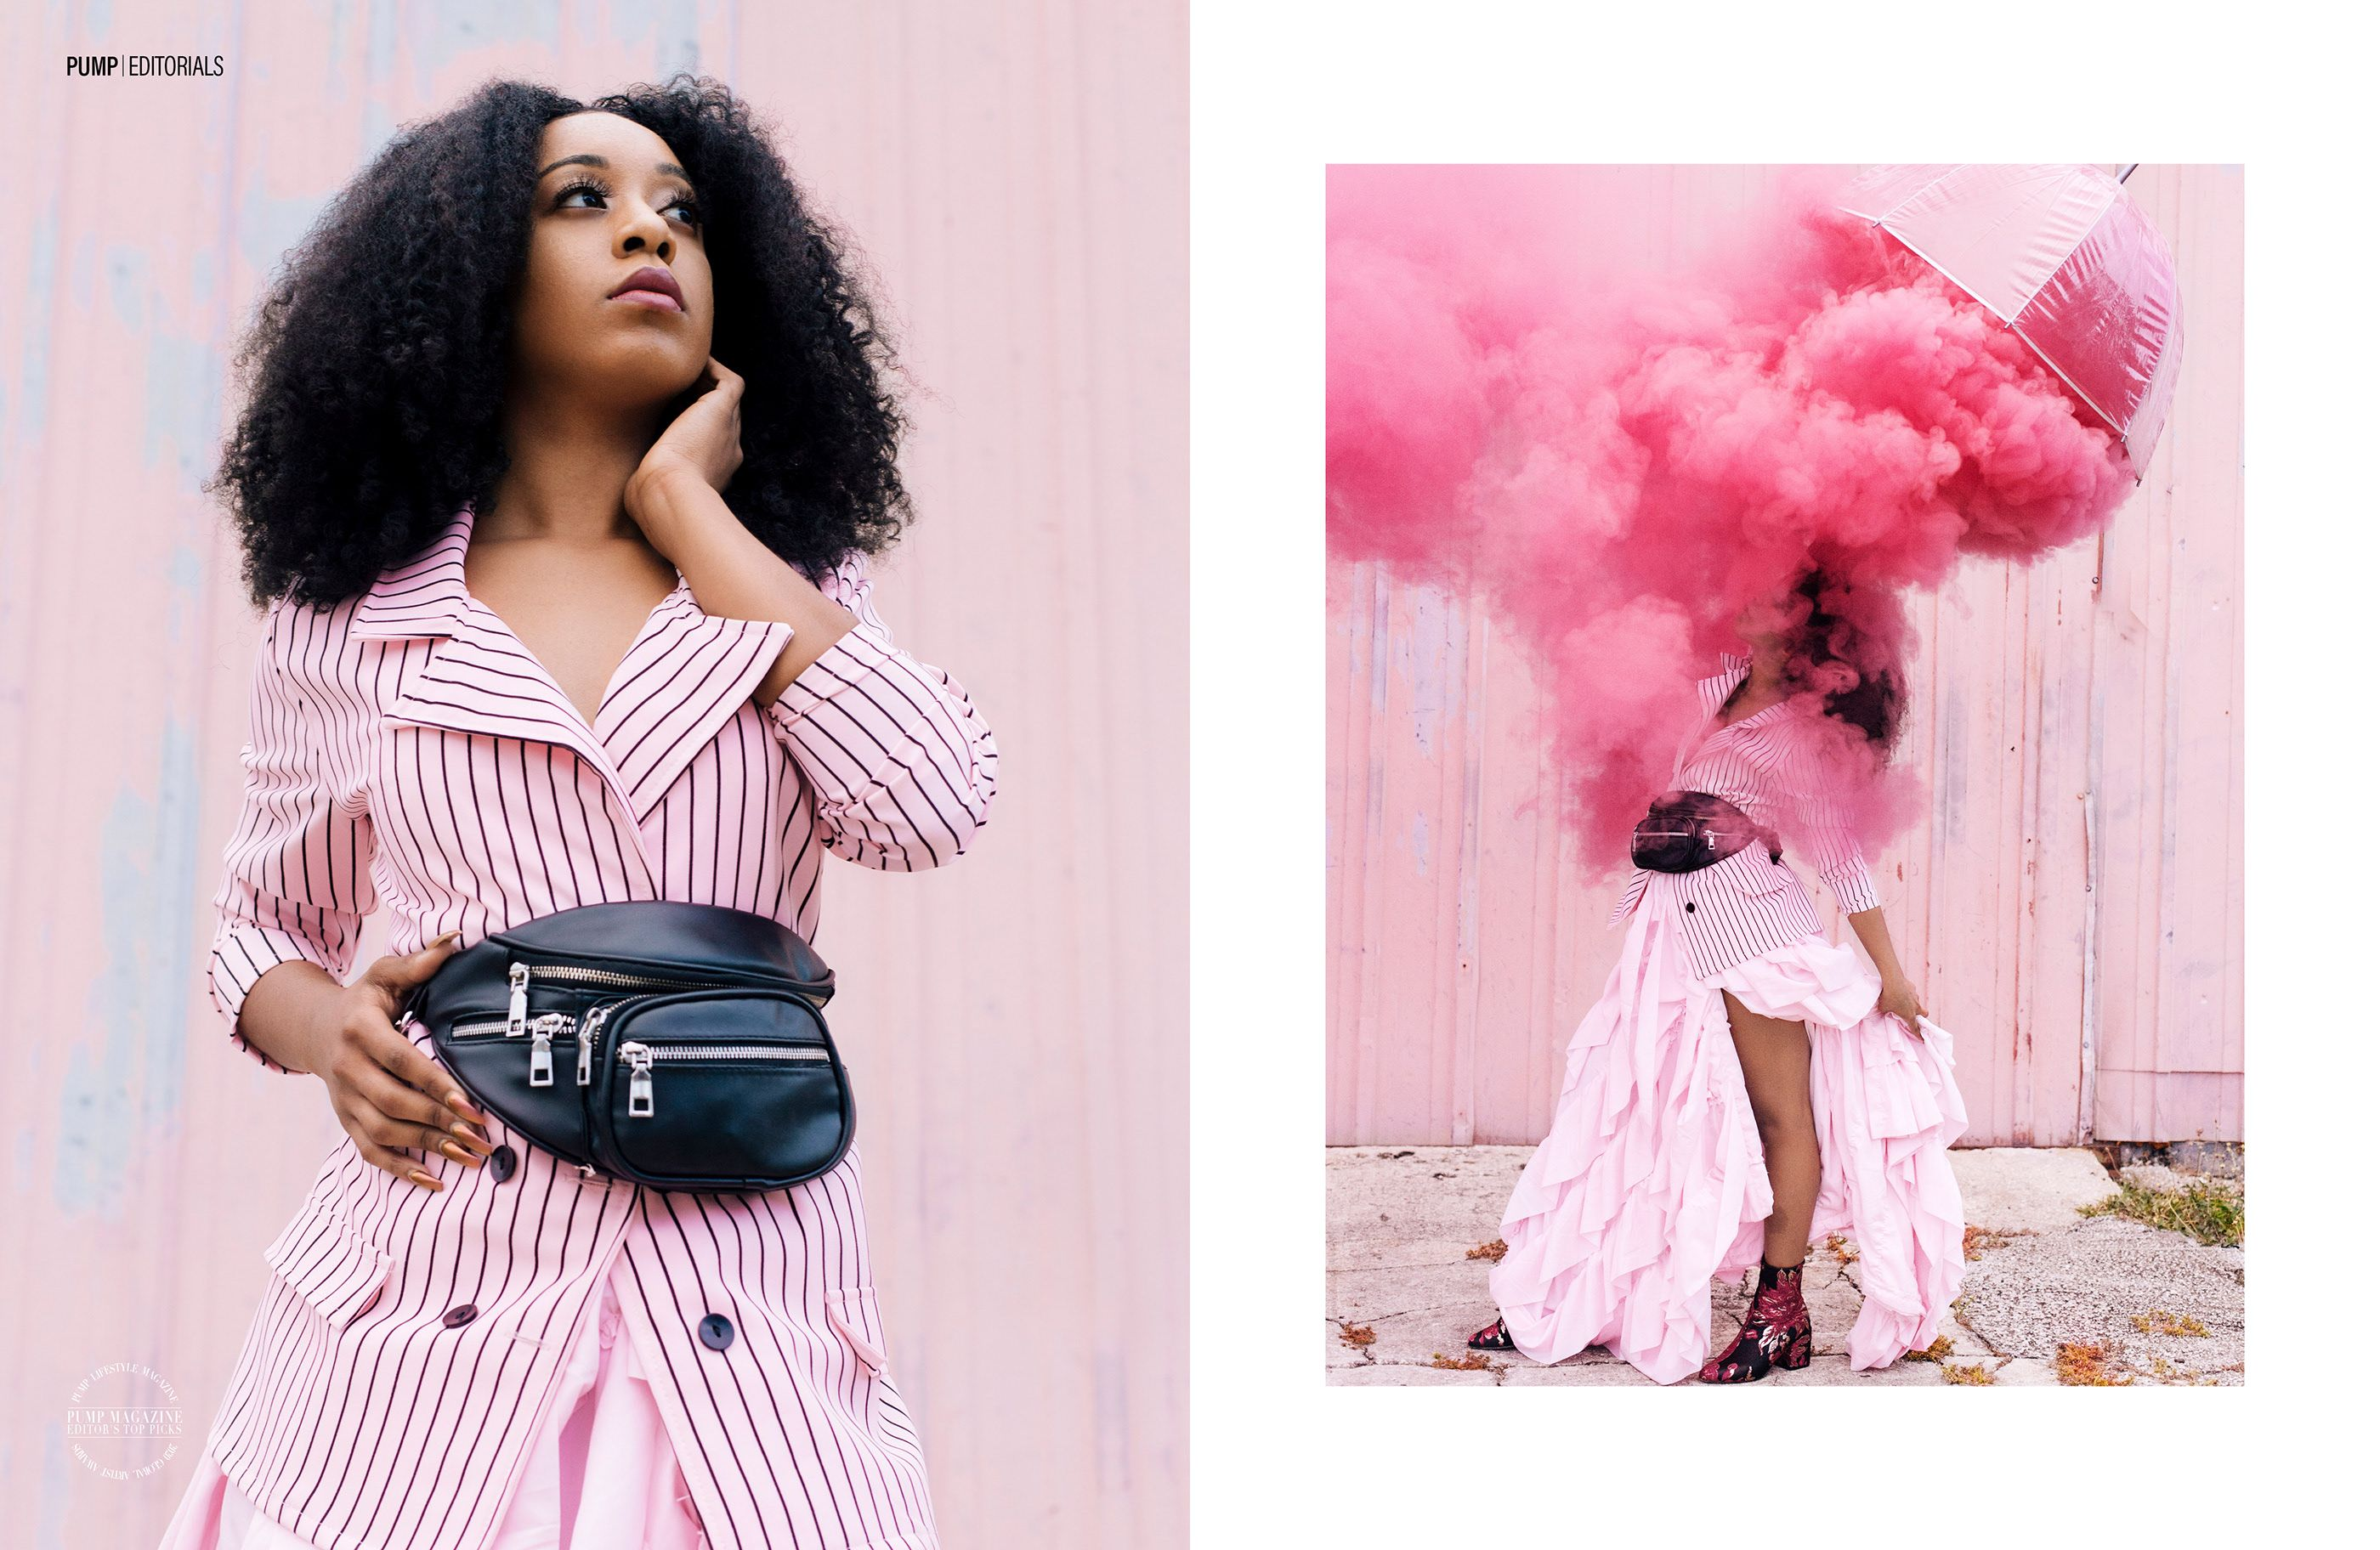 PUMP Magazine Model: Briana Hunt (@blvckxeuphoria) #pink #womeninsuits #suits #editorial #fashionphotography #publication #fashionmagazine #monochromatic